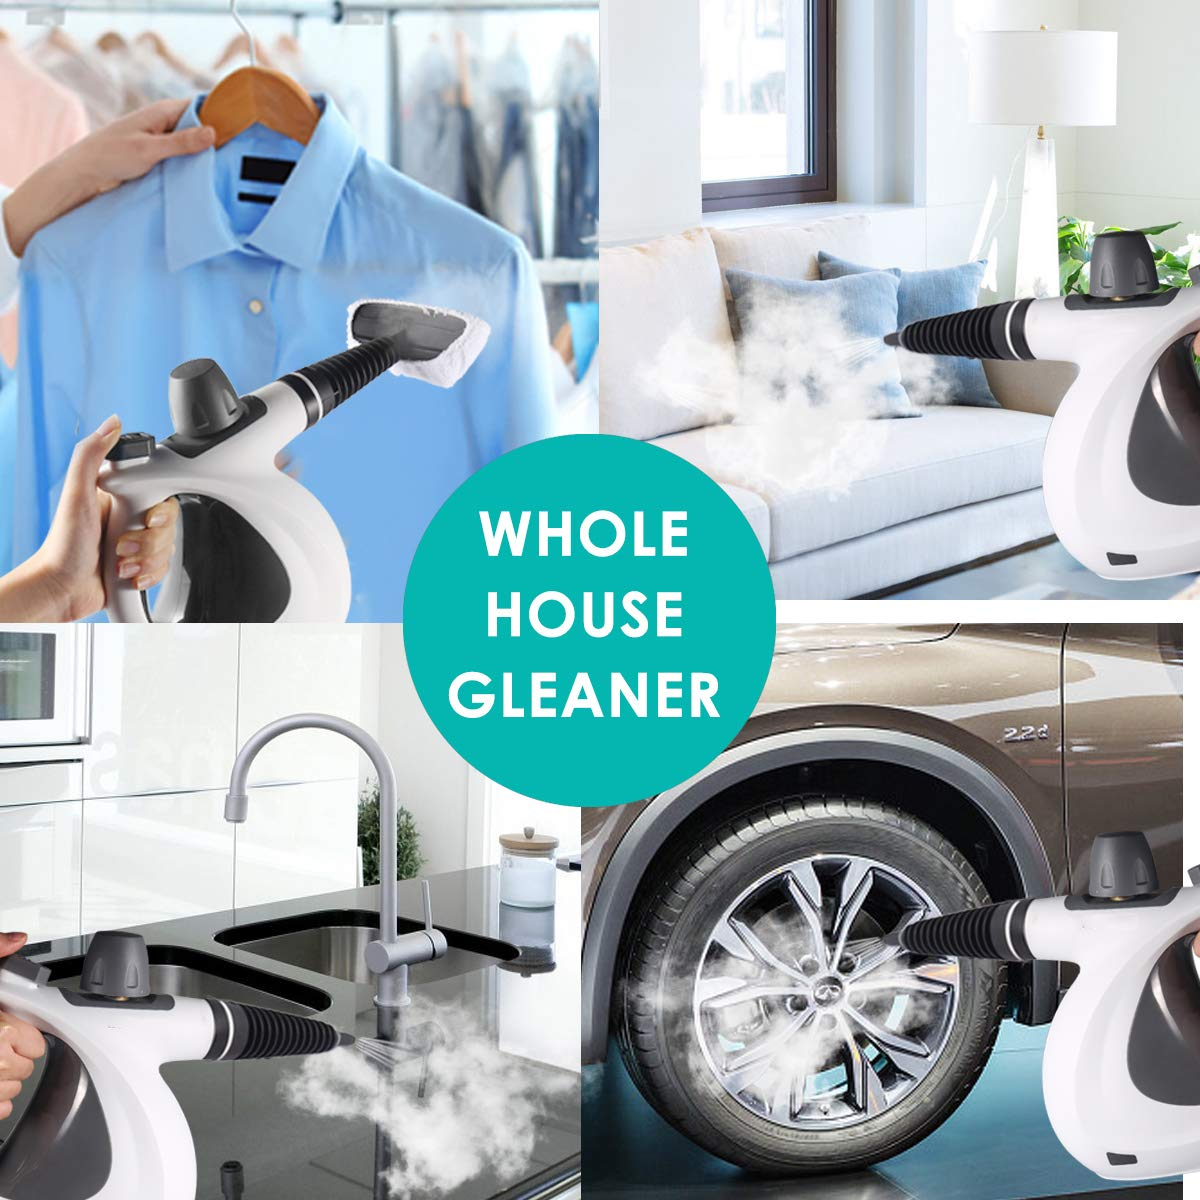 Patio Chemical-Free Steam Cleaning Home Handheld Pressurized Cleaner 9-Piece Accessory Set Purpose Multi-Surface All Natural Auto